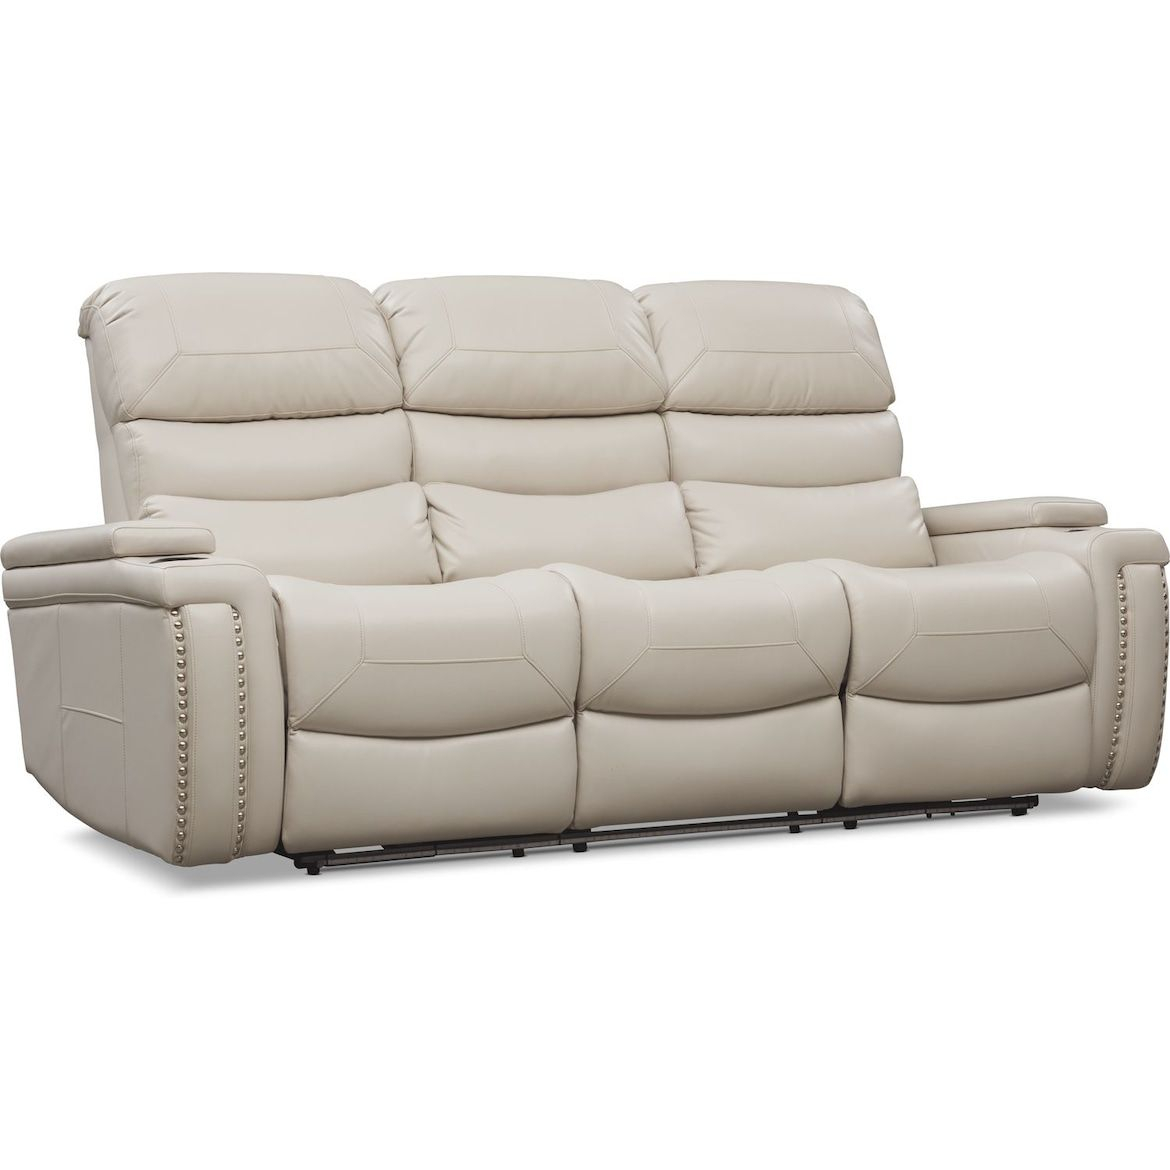 Jackson Triple Power Reclining Sofa And Recliner Set Within Charleston Triple Power Reclining Sofas (View 3 of 15)